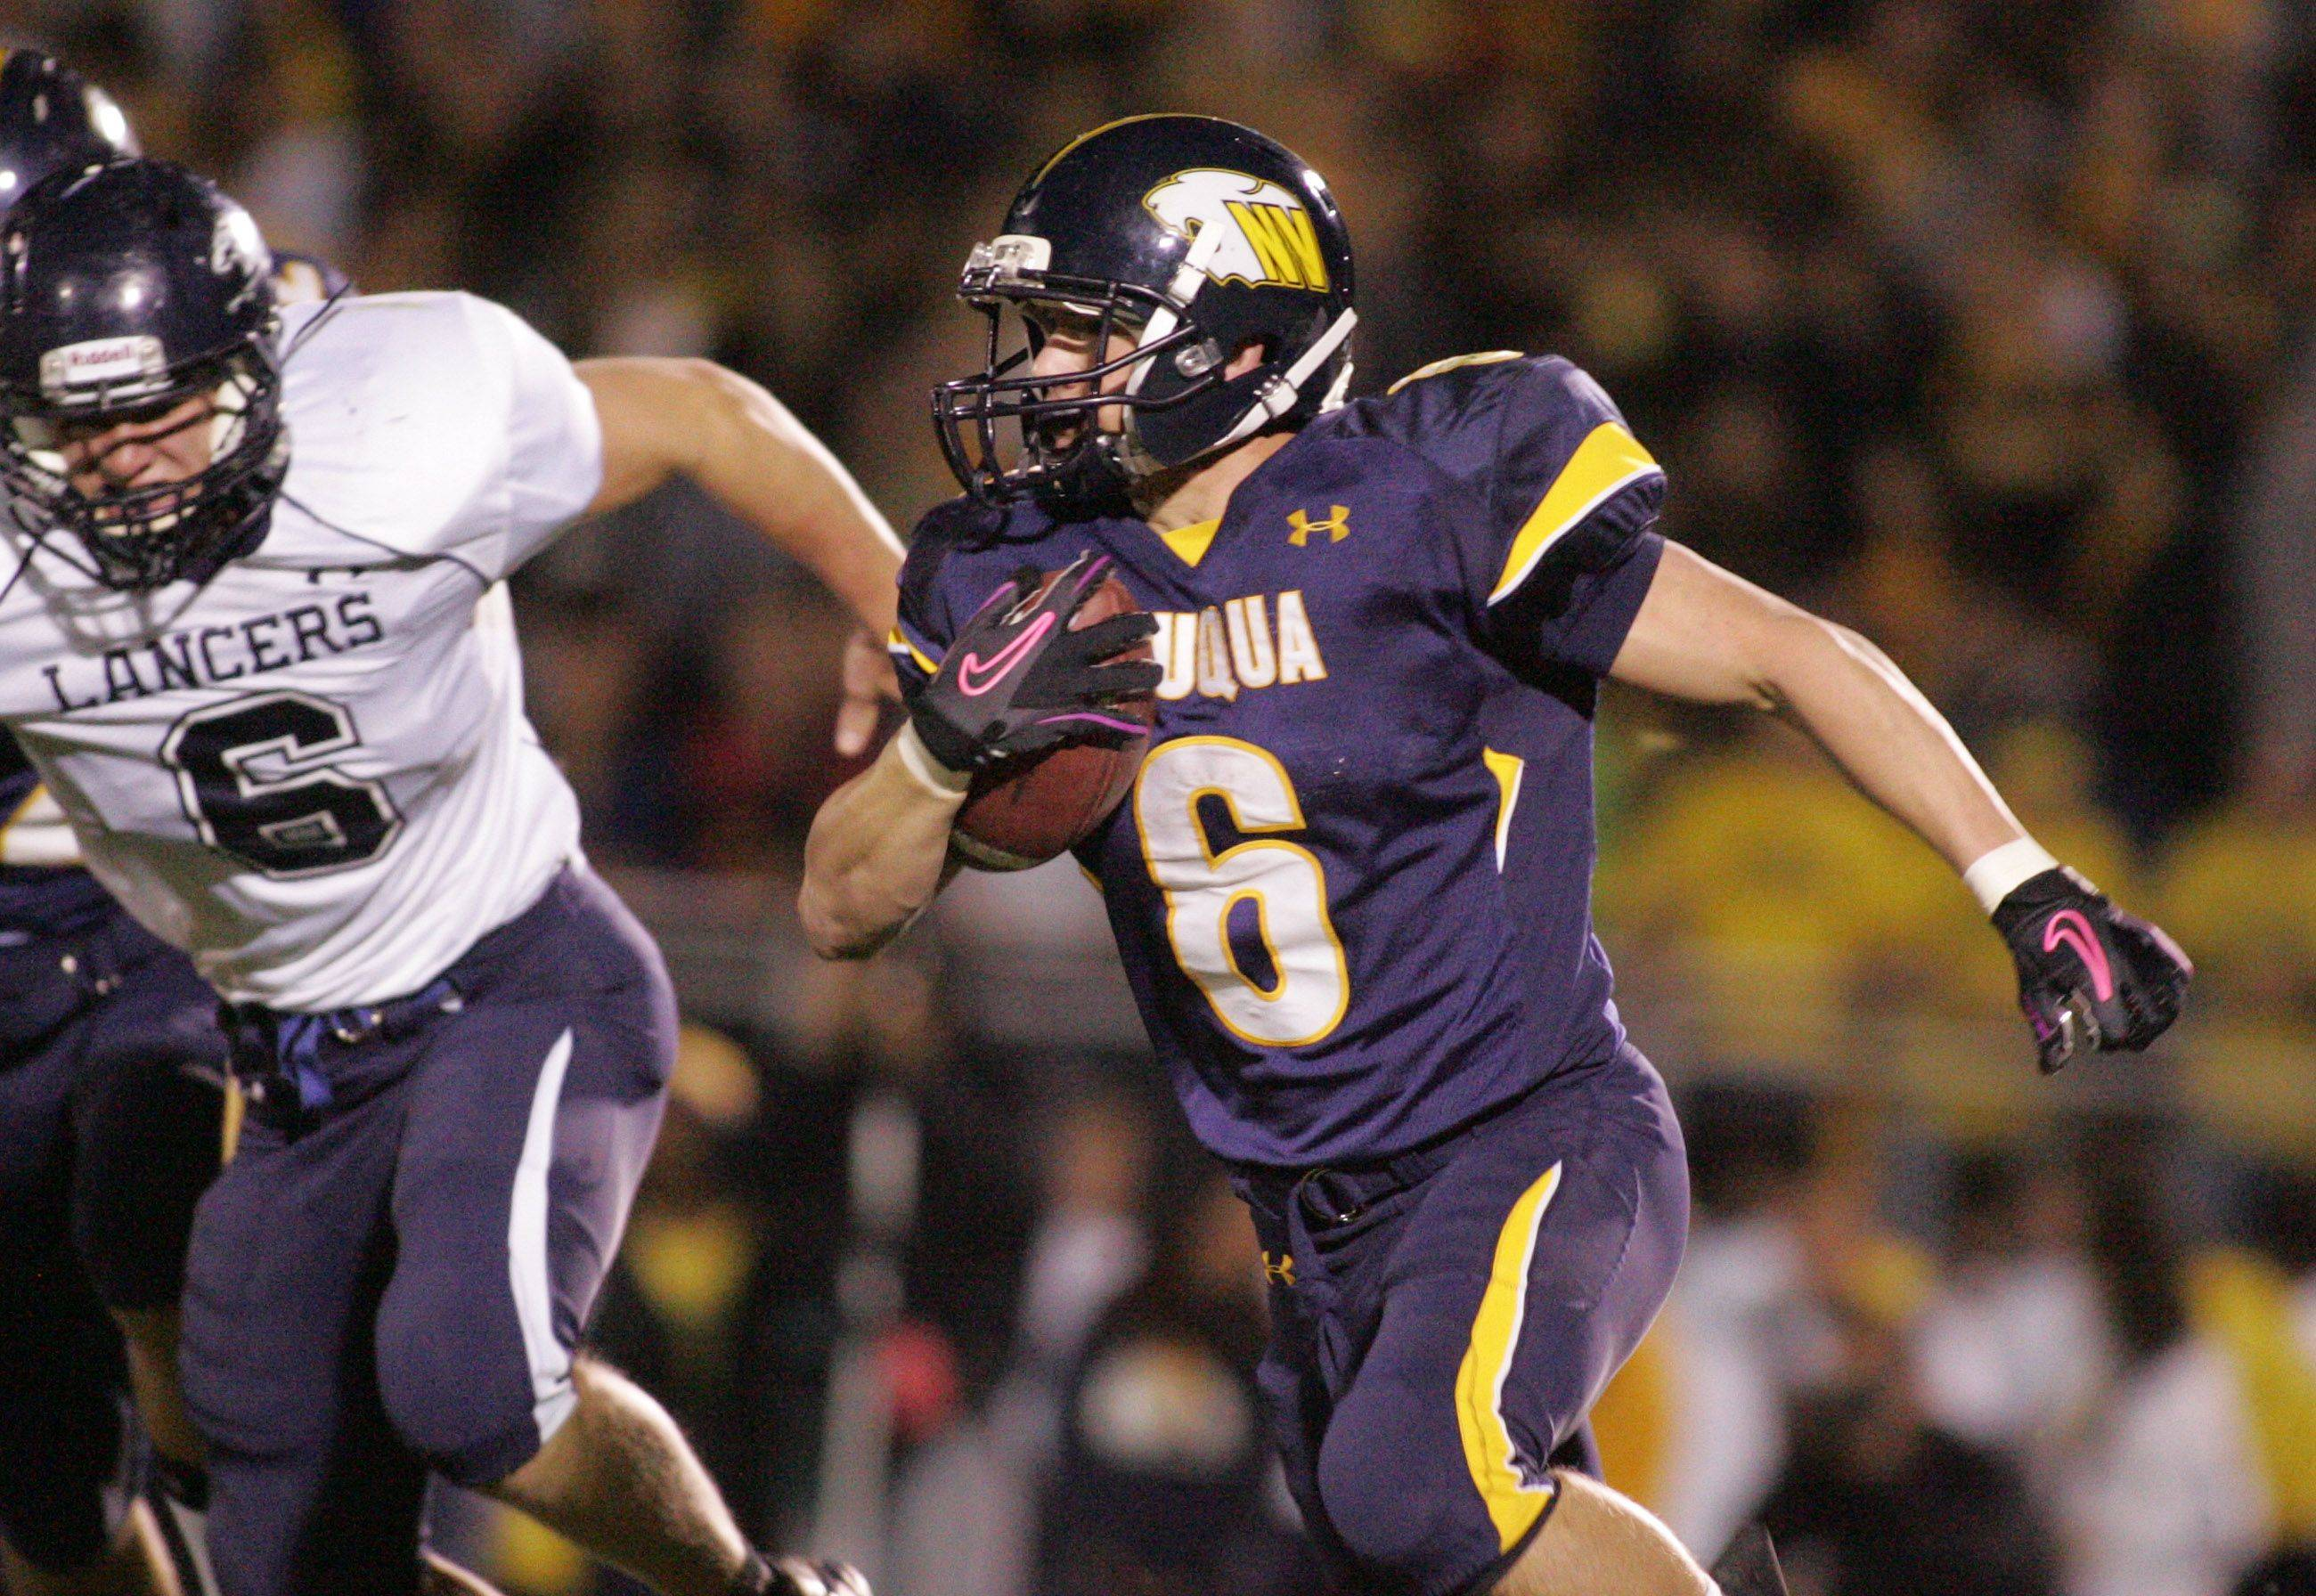 WEEK 9- Neuqua valley's Trent Snyder rushes past Lake Park players.